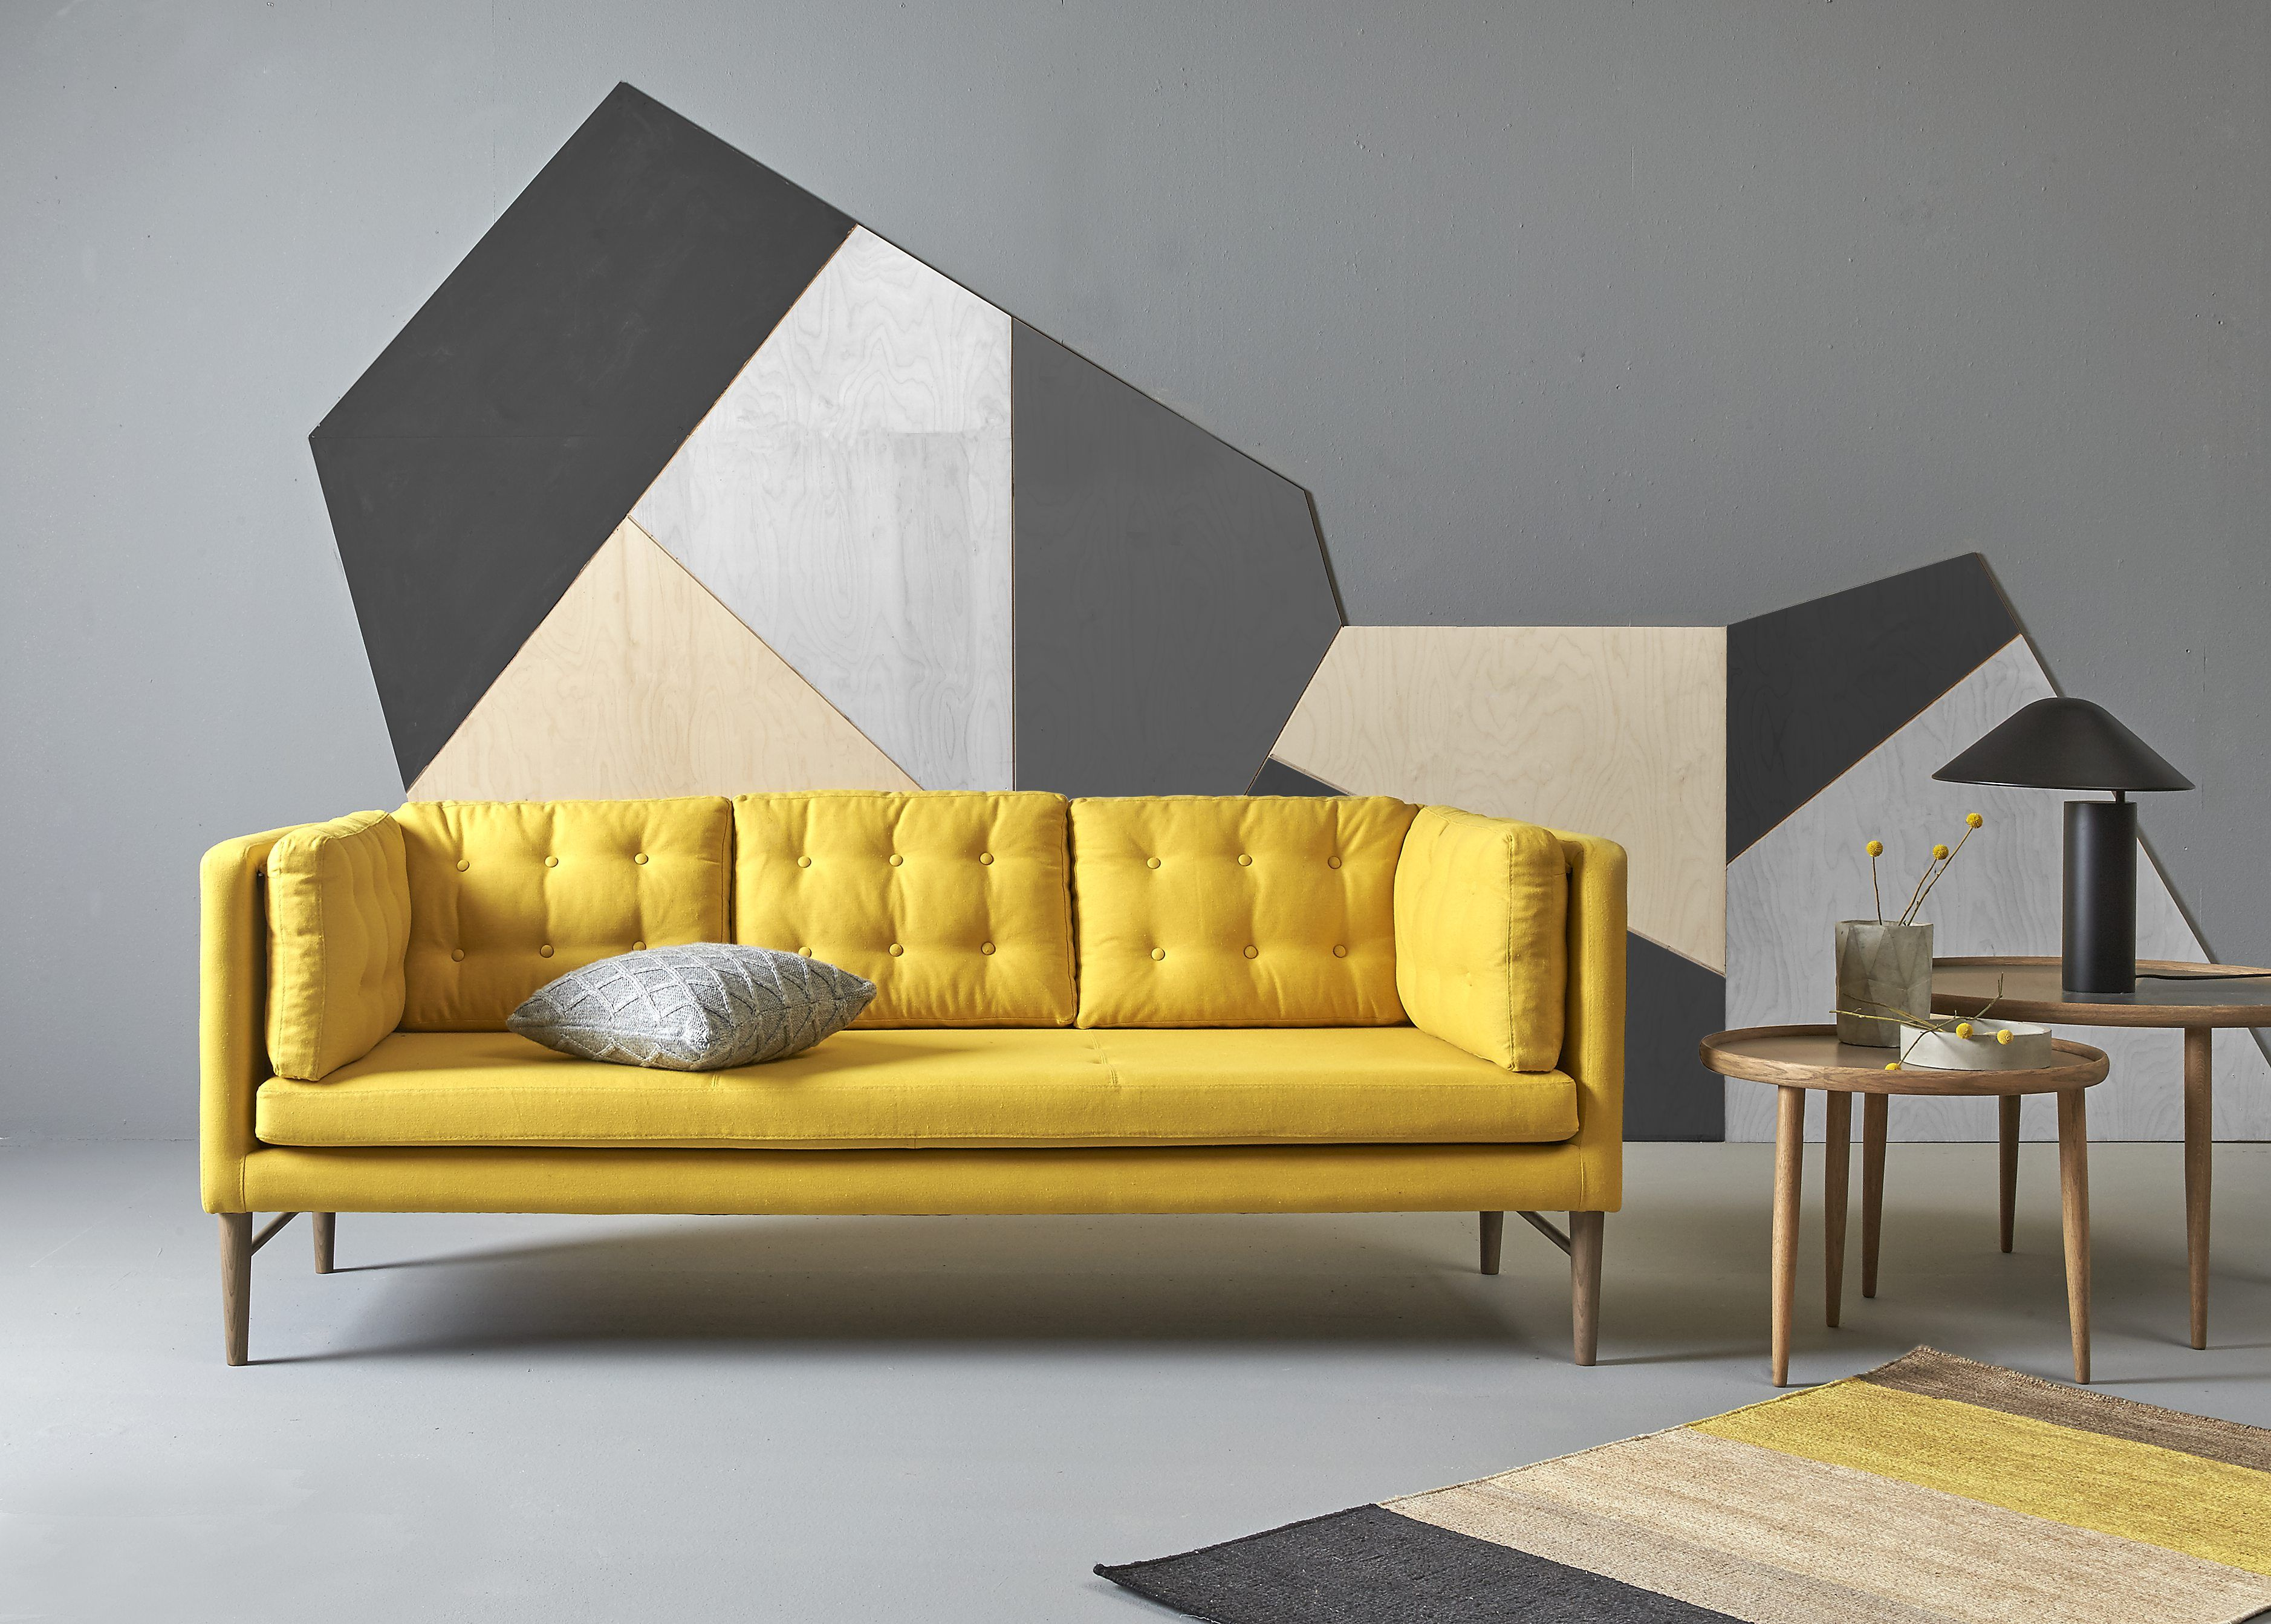 Sofa Hudson Viii Asolo Hjørnesofa Med Pufafslutning Colorful Couches Yellow